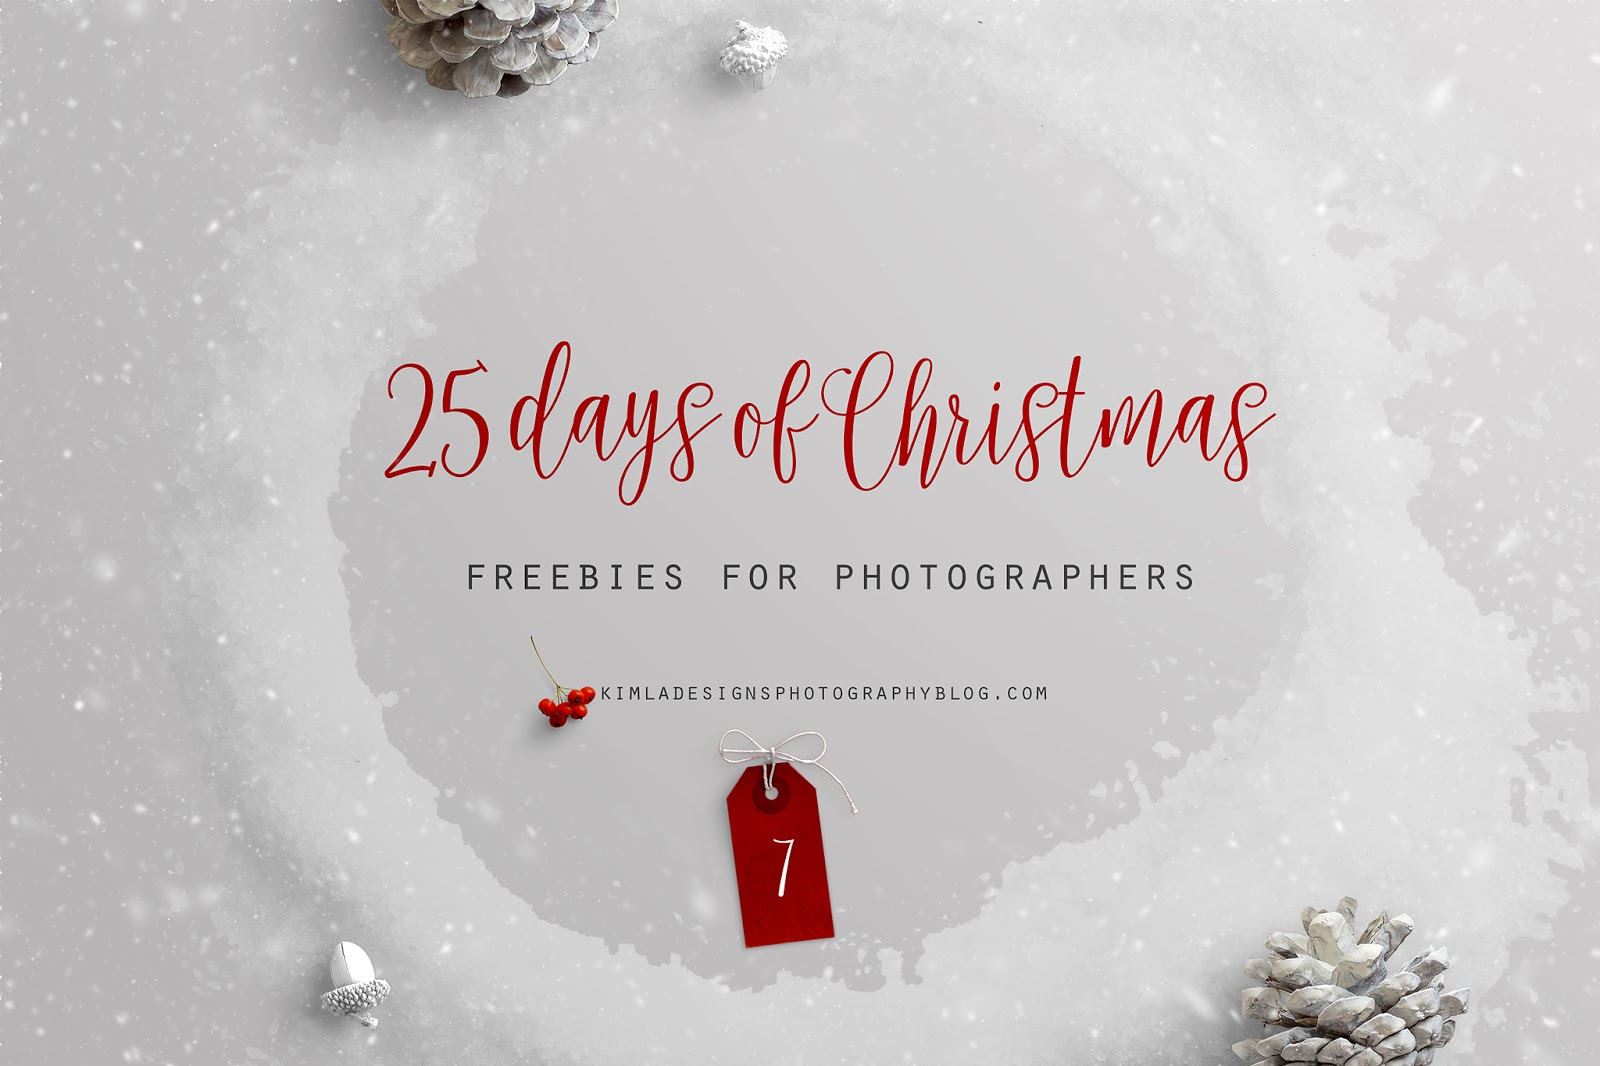 Day 7 of 25 Day fo Christmas Freebies for Photographers